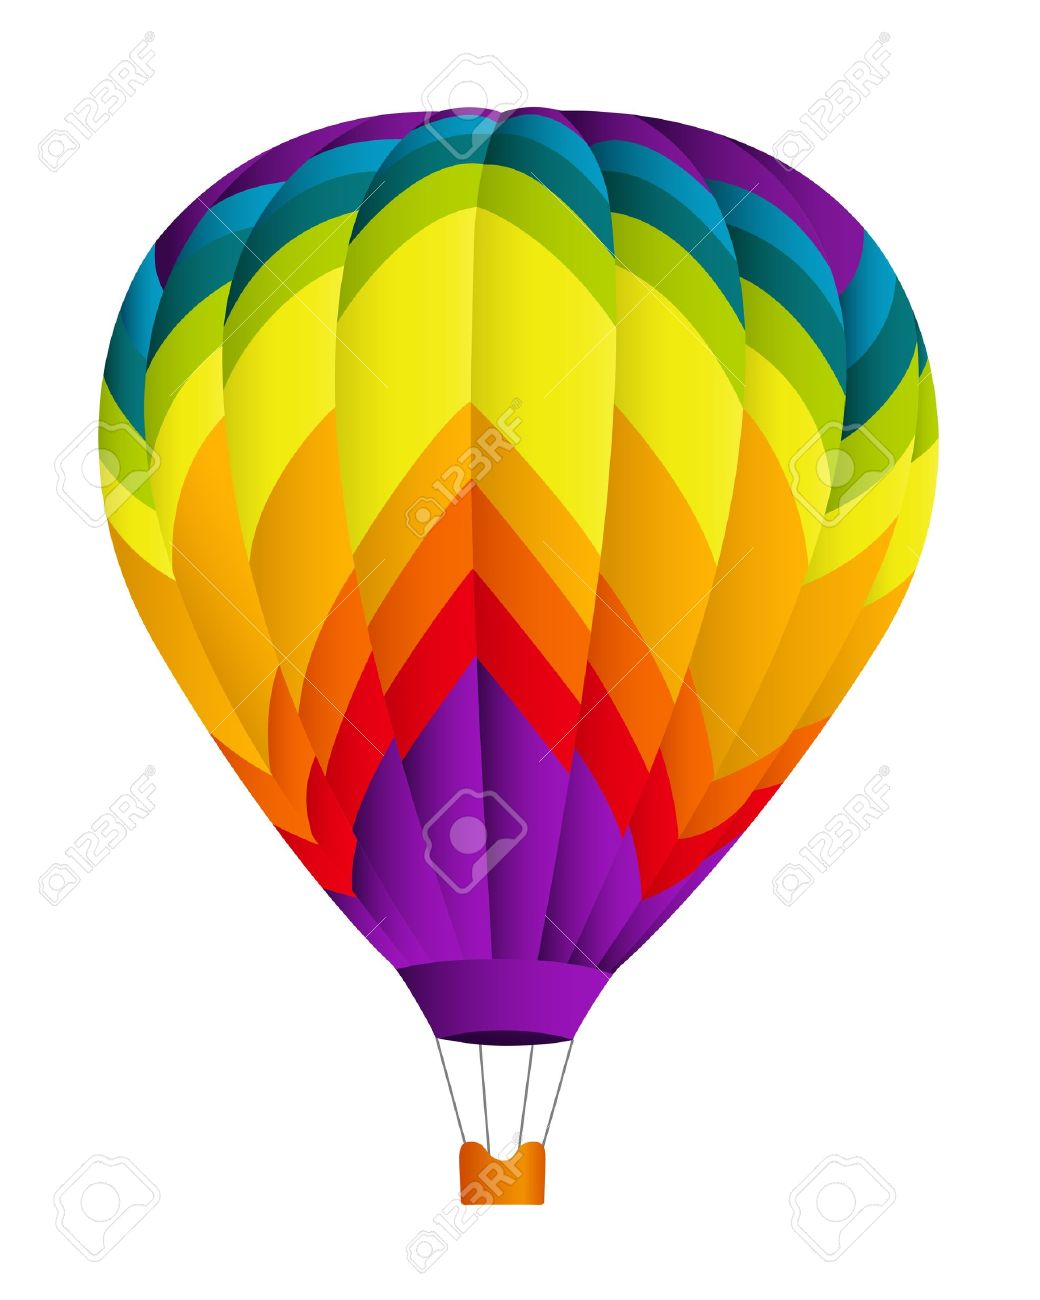 Hot Air Balloon Vector Illustration On White Background Royalty.